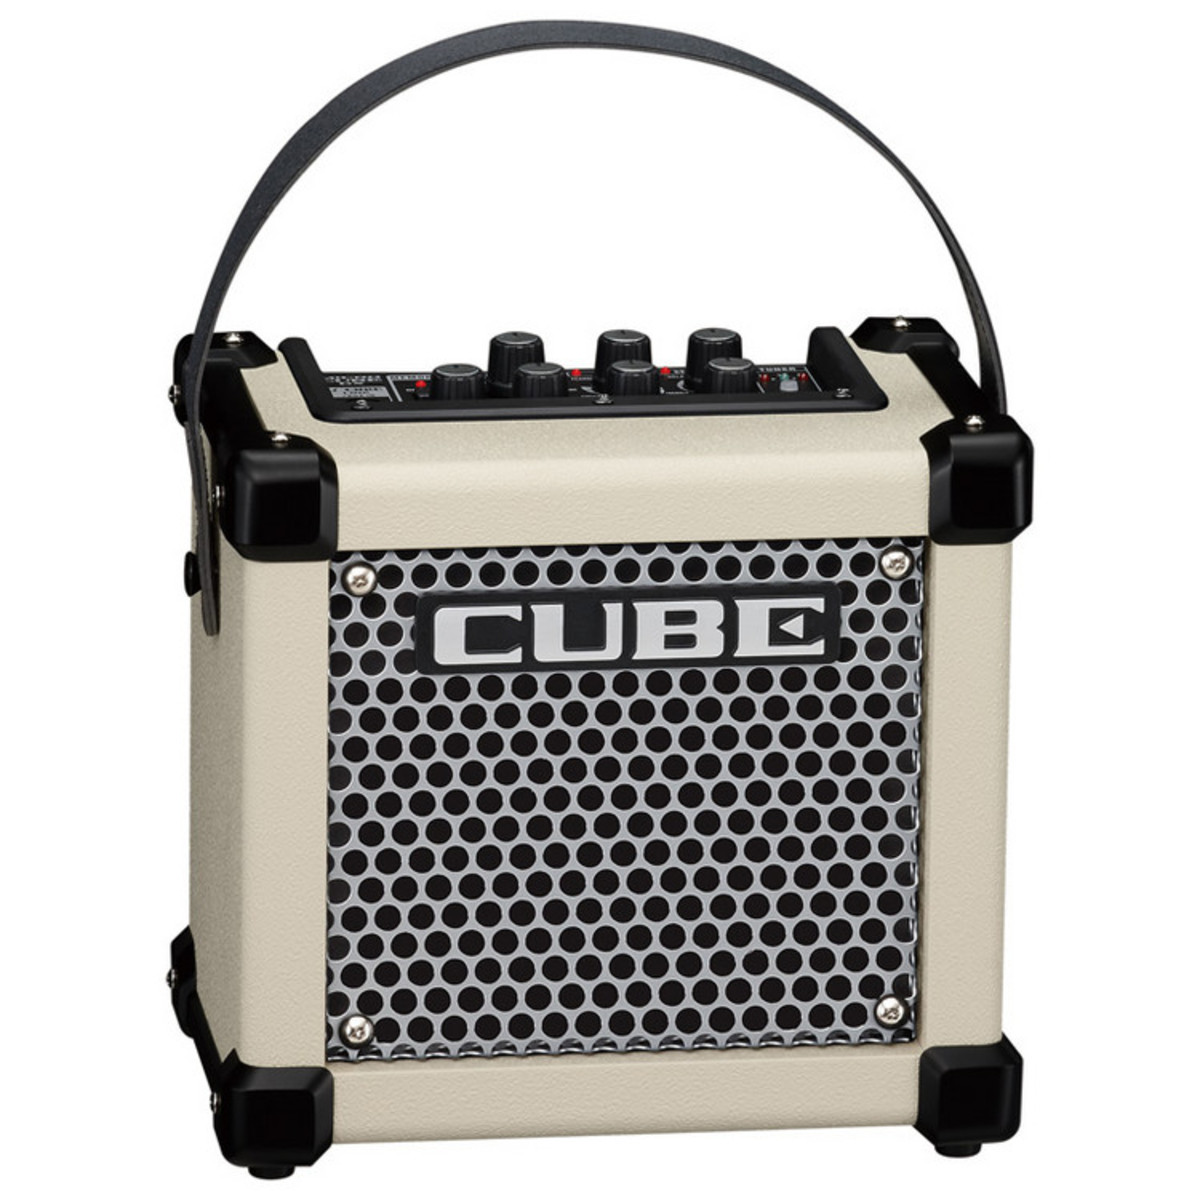 roland micro cube gx guitar amplifier white at gear4music. Black Bedroom Furniture Sets. Home Design Ideas